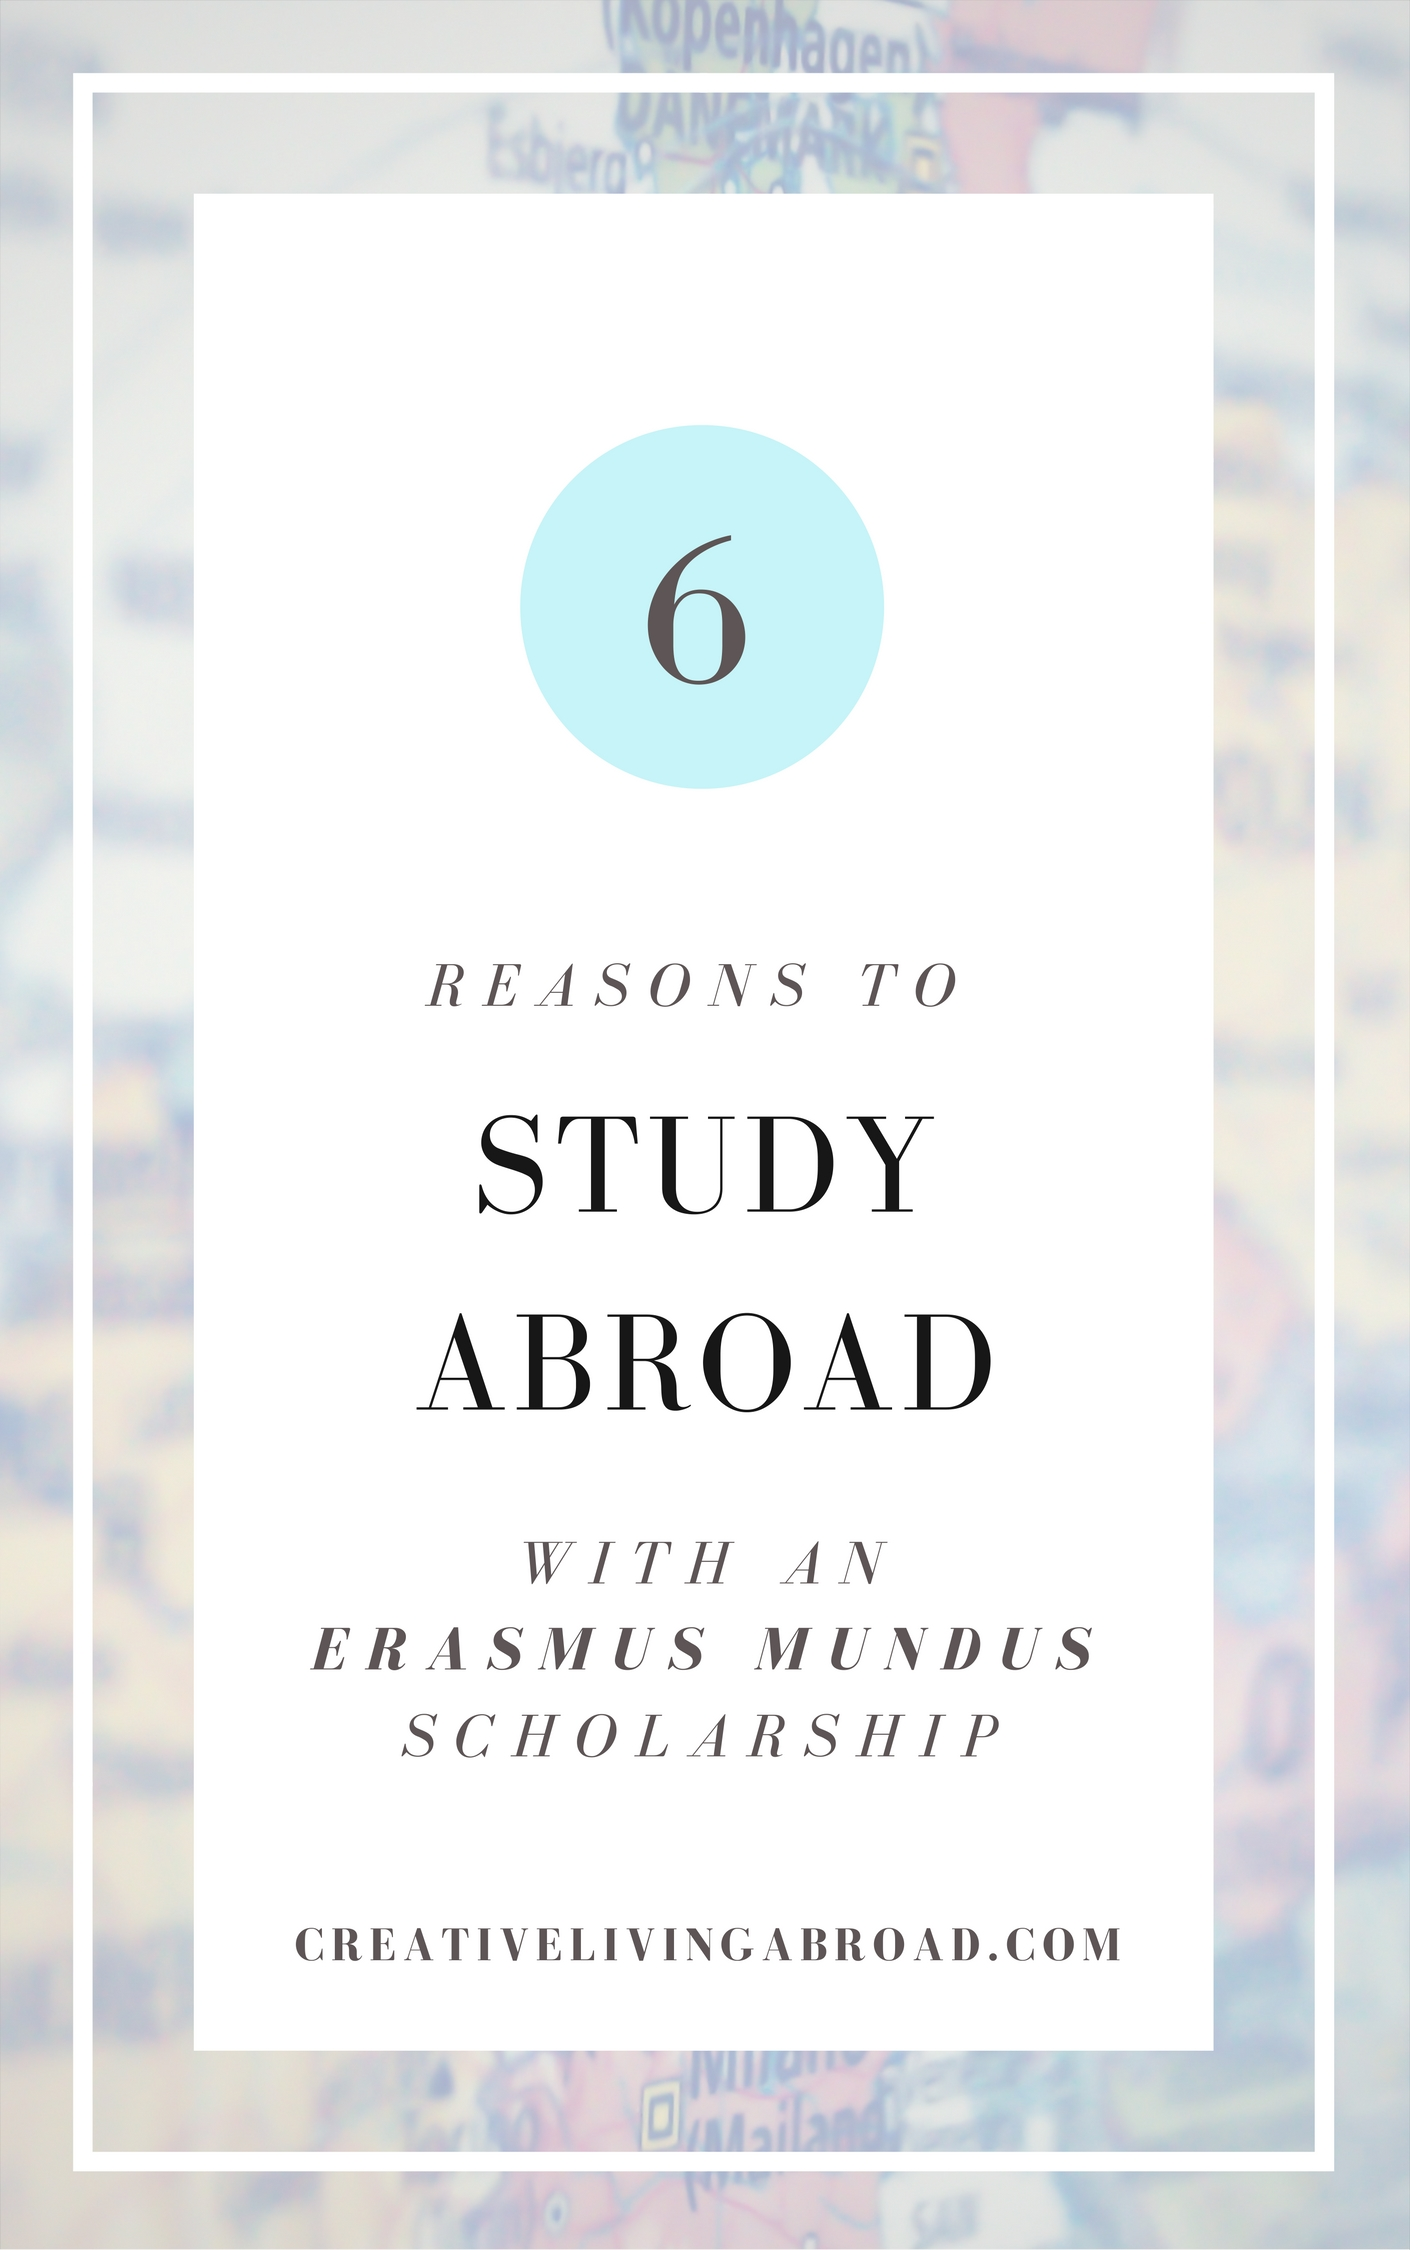 reasons to study abroad with an erasmus mundus scholarship